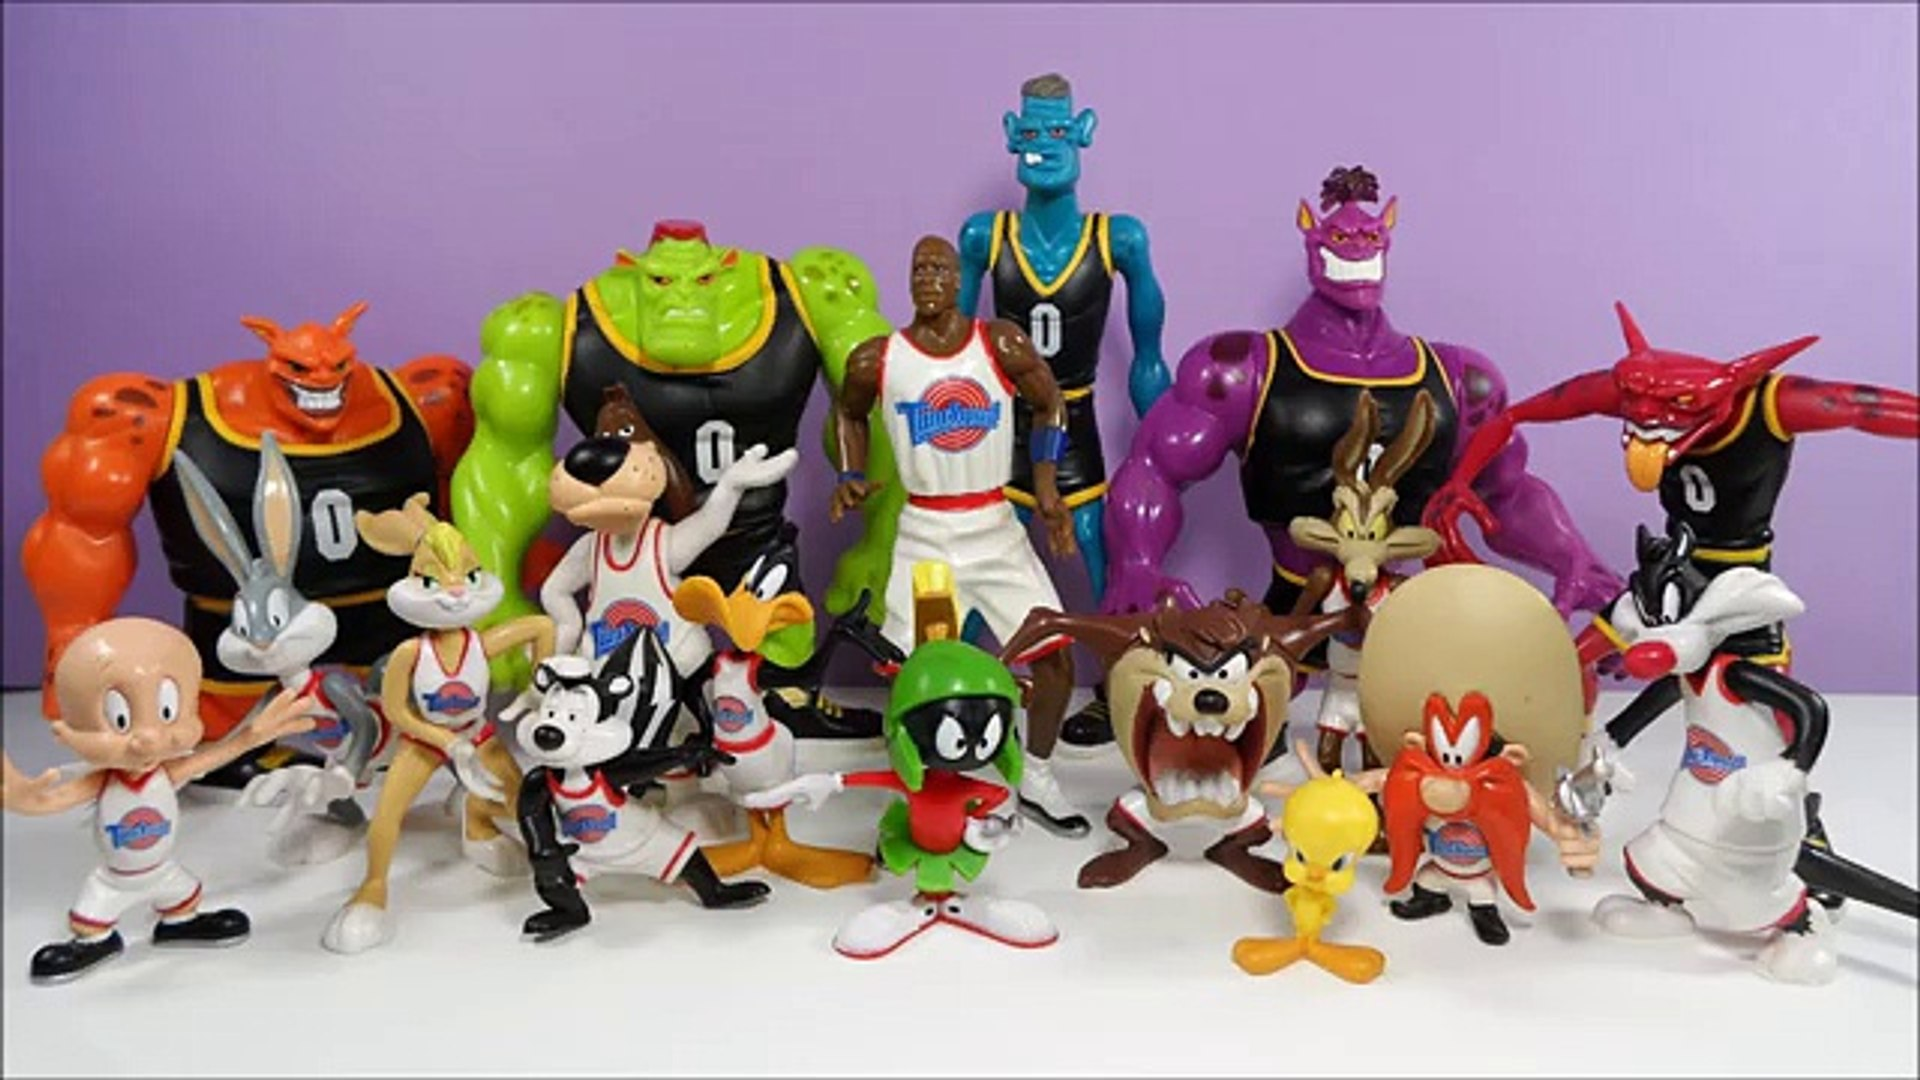 Playmates 1996 Space Jam Basketball Tune Squad Daffy Duck Figure